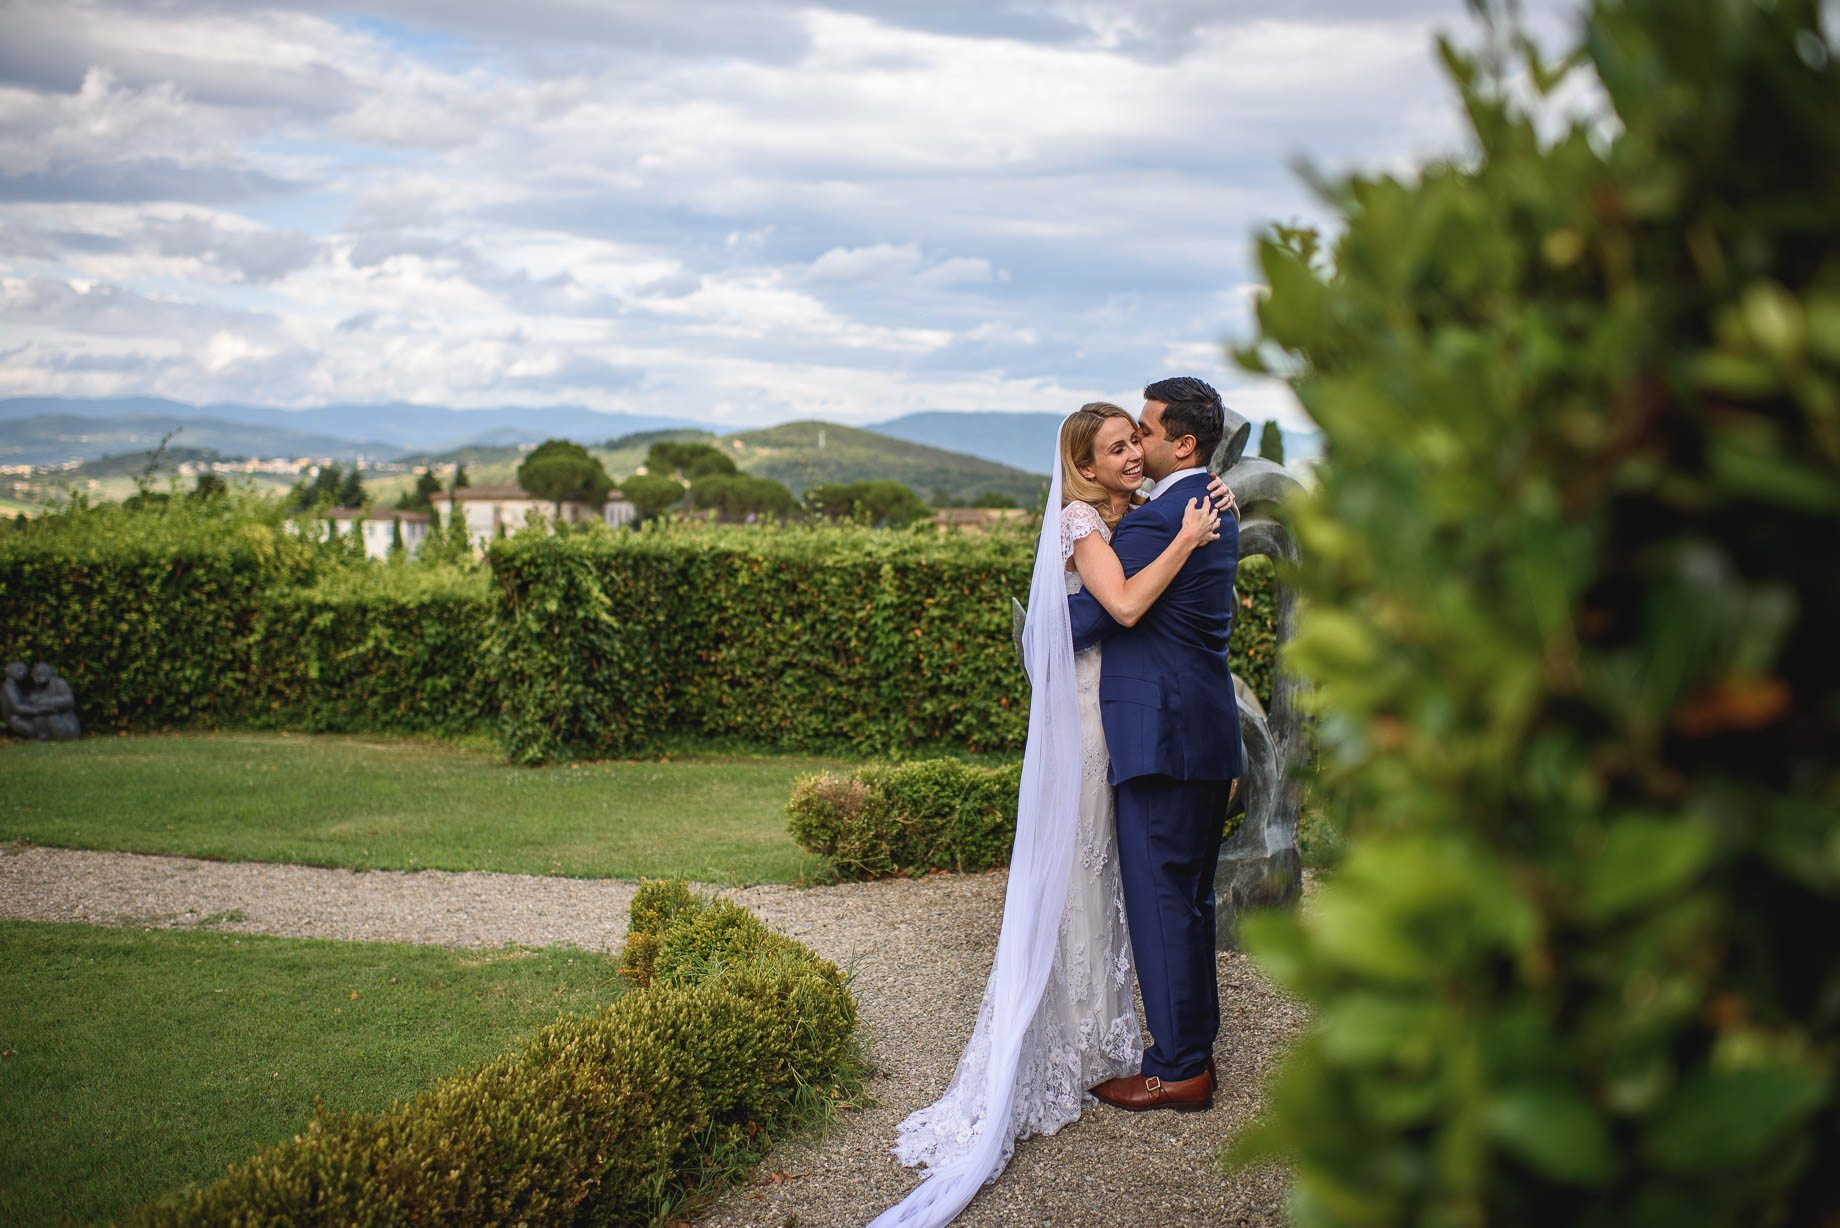 Tuscany wedding photography - Roisin and Moubin - Guy Collier Photography (136 of 251)